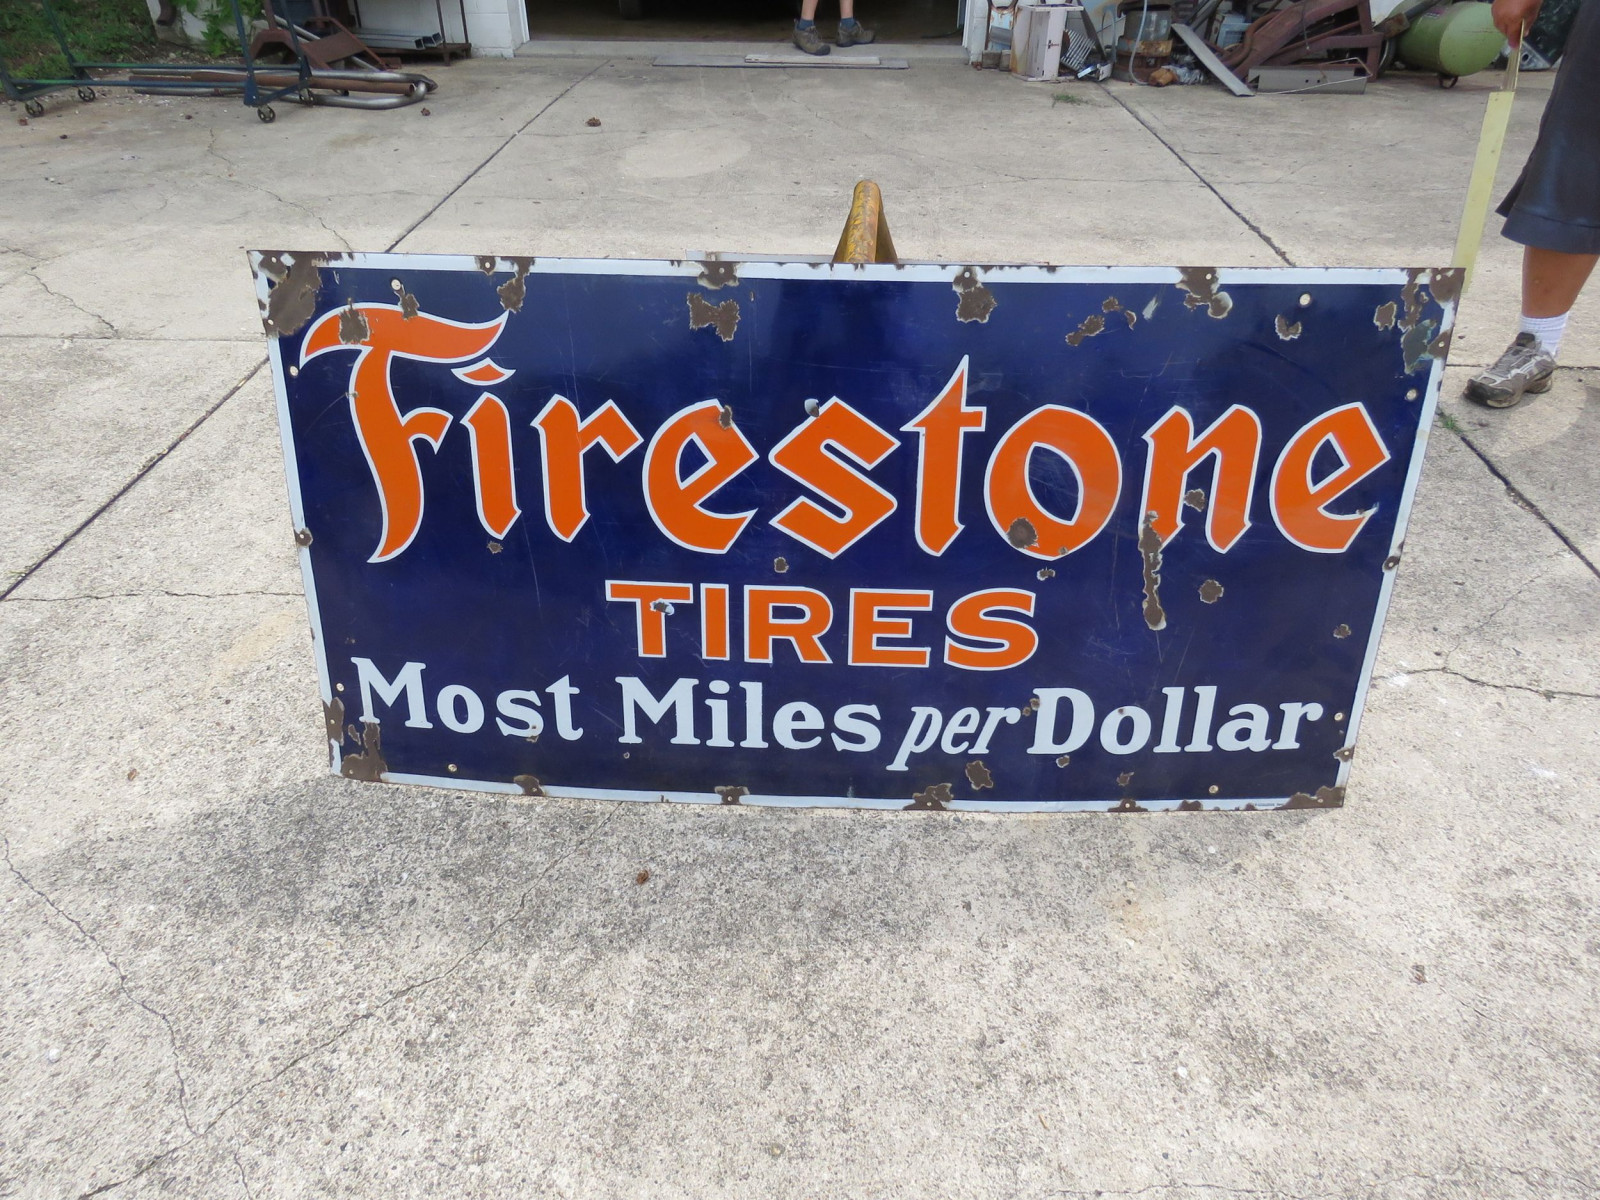 Firestone Tires Porcelain Sign - Image 1